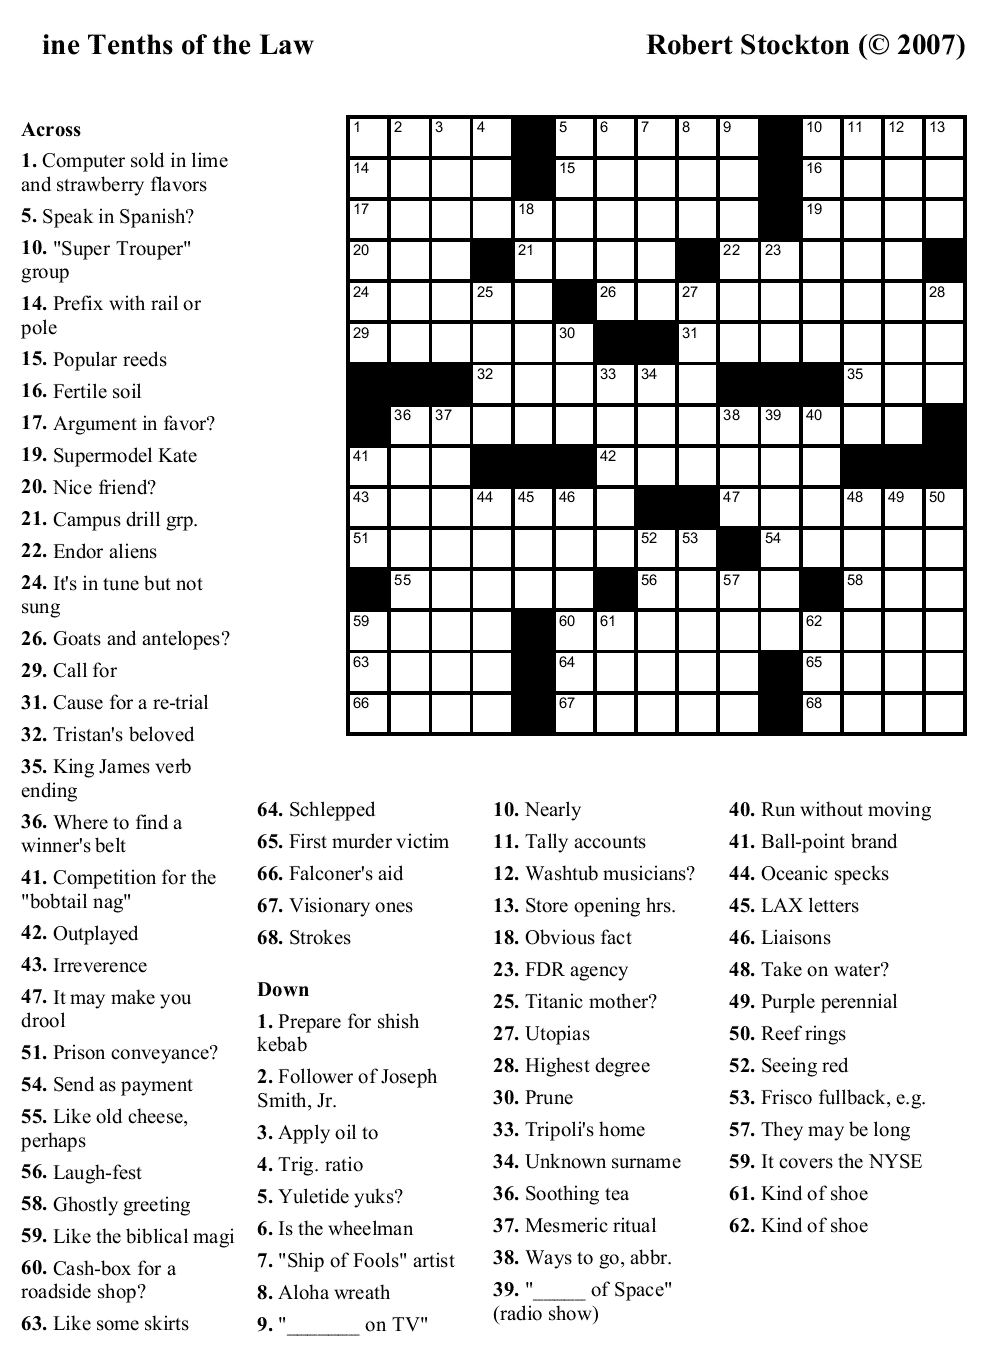 Crossword Puzzles Printable - Yahoo Image Search Results | Crossword - Printable Crossword Puzzles Solutions